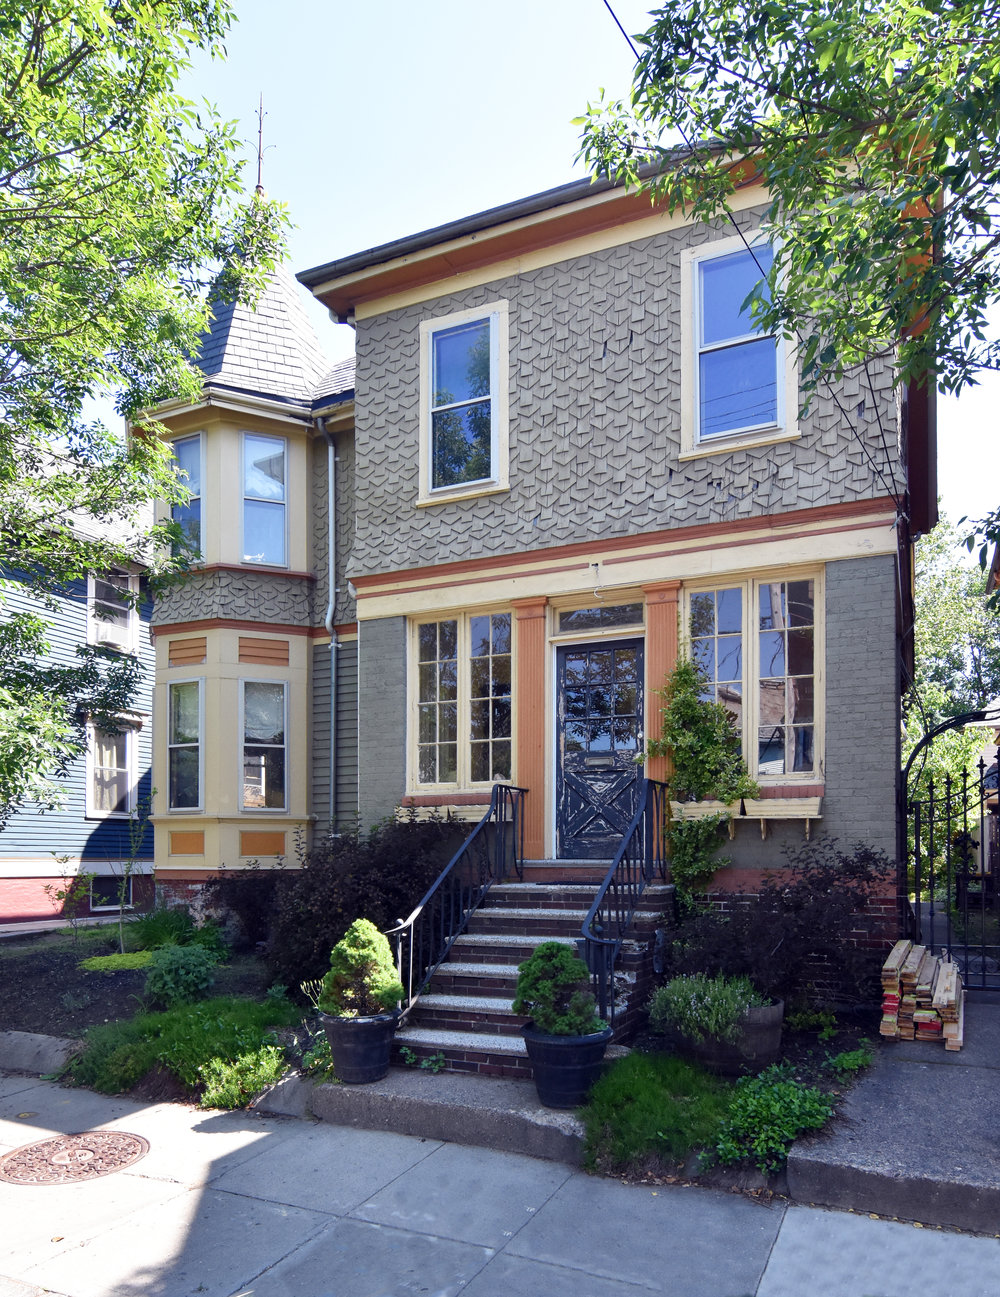 WBNA HOUSE TOUR  FROM VACANT TO VIBRANT 260 Knight Street   BUY TICKETS